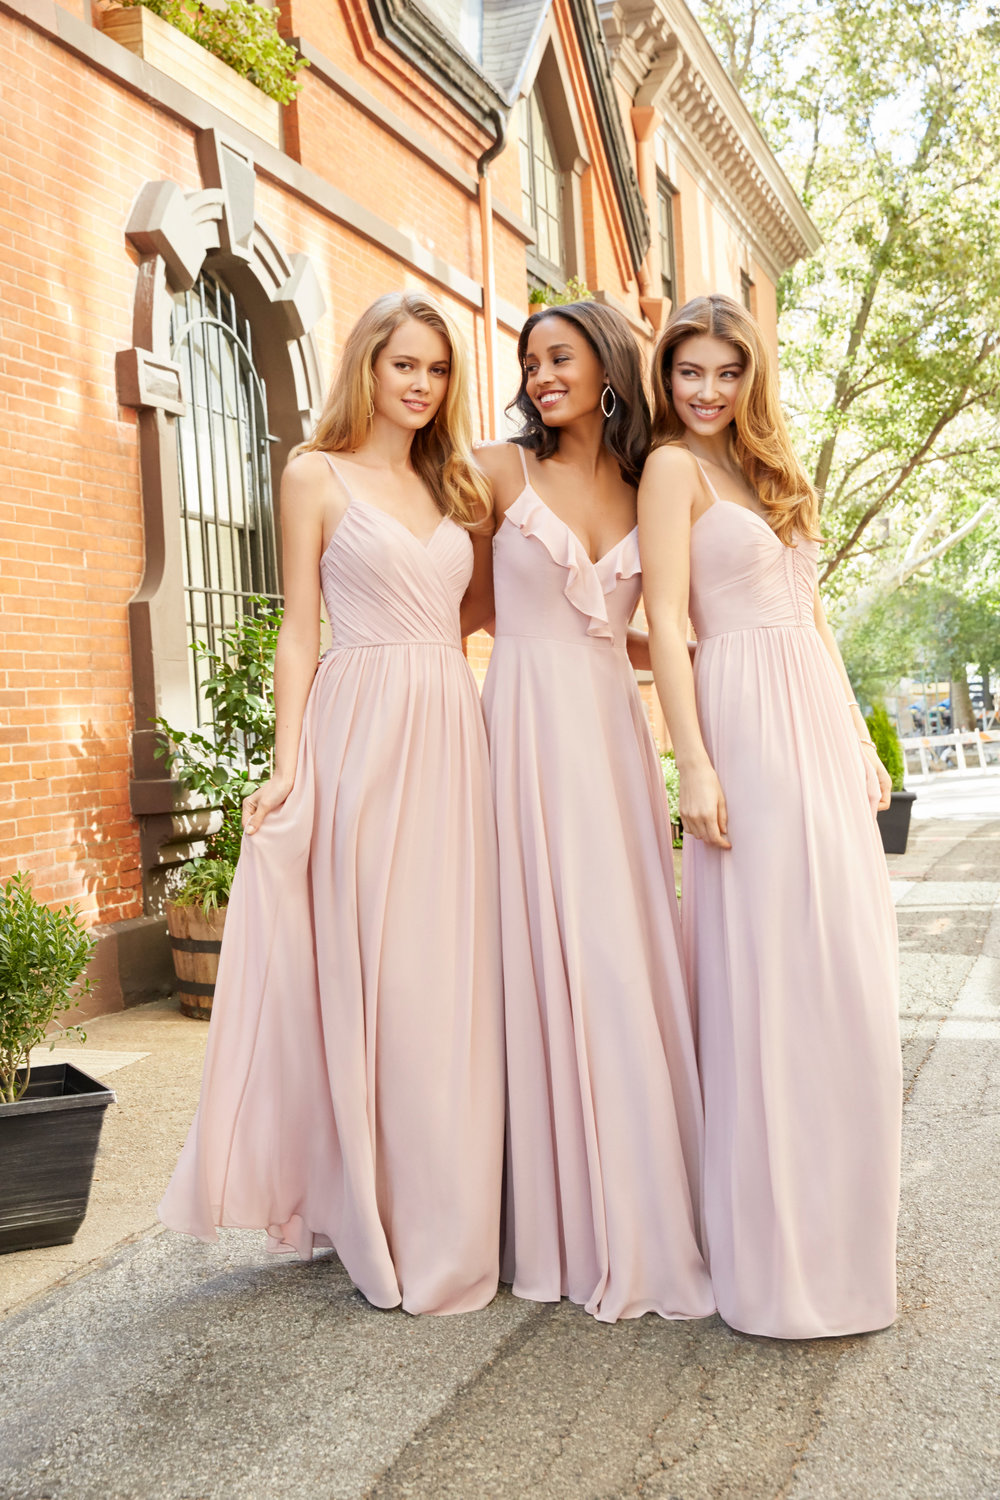 ivory-and-beau-savannah-bridal-shop-savannah-bridesmaids-dresses-blush-bridesmaids-dresses-bridesmaids-sale-savannah-wedding-dresses-savannah-wedding-shop-hayley-paige-occasions-bridesmaids-and-special-occasion-spring-2018-style-5804_7.jpg